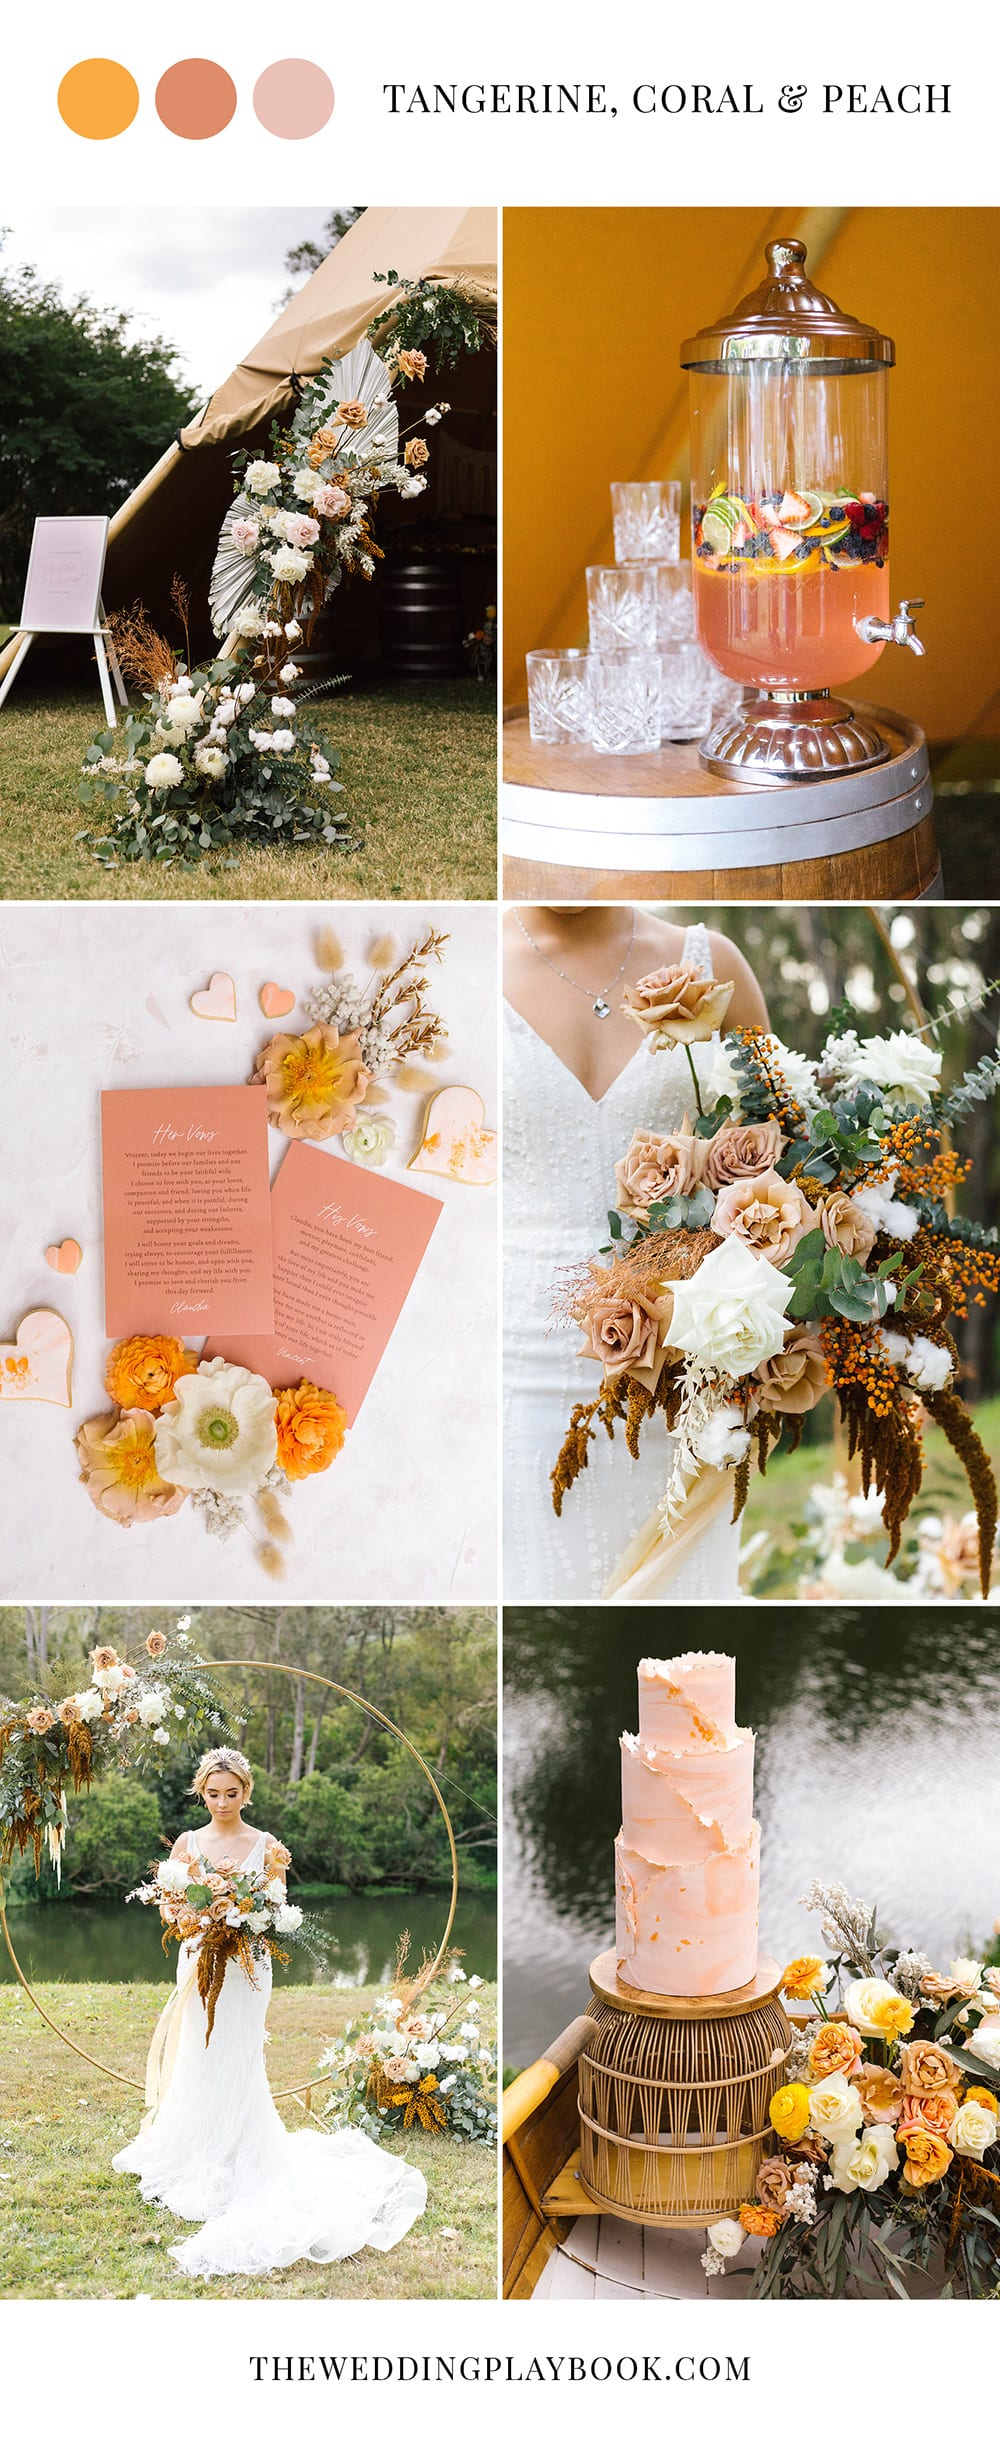 Romantic Riverside Boho Wedding Inspiration in Tangerine, Coral & Peach | Photography: Poppy and Sage